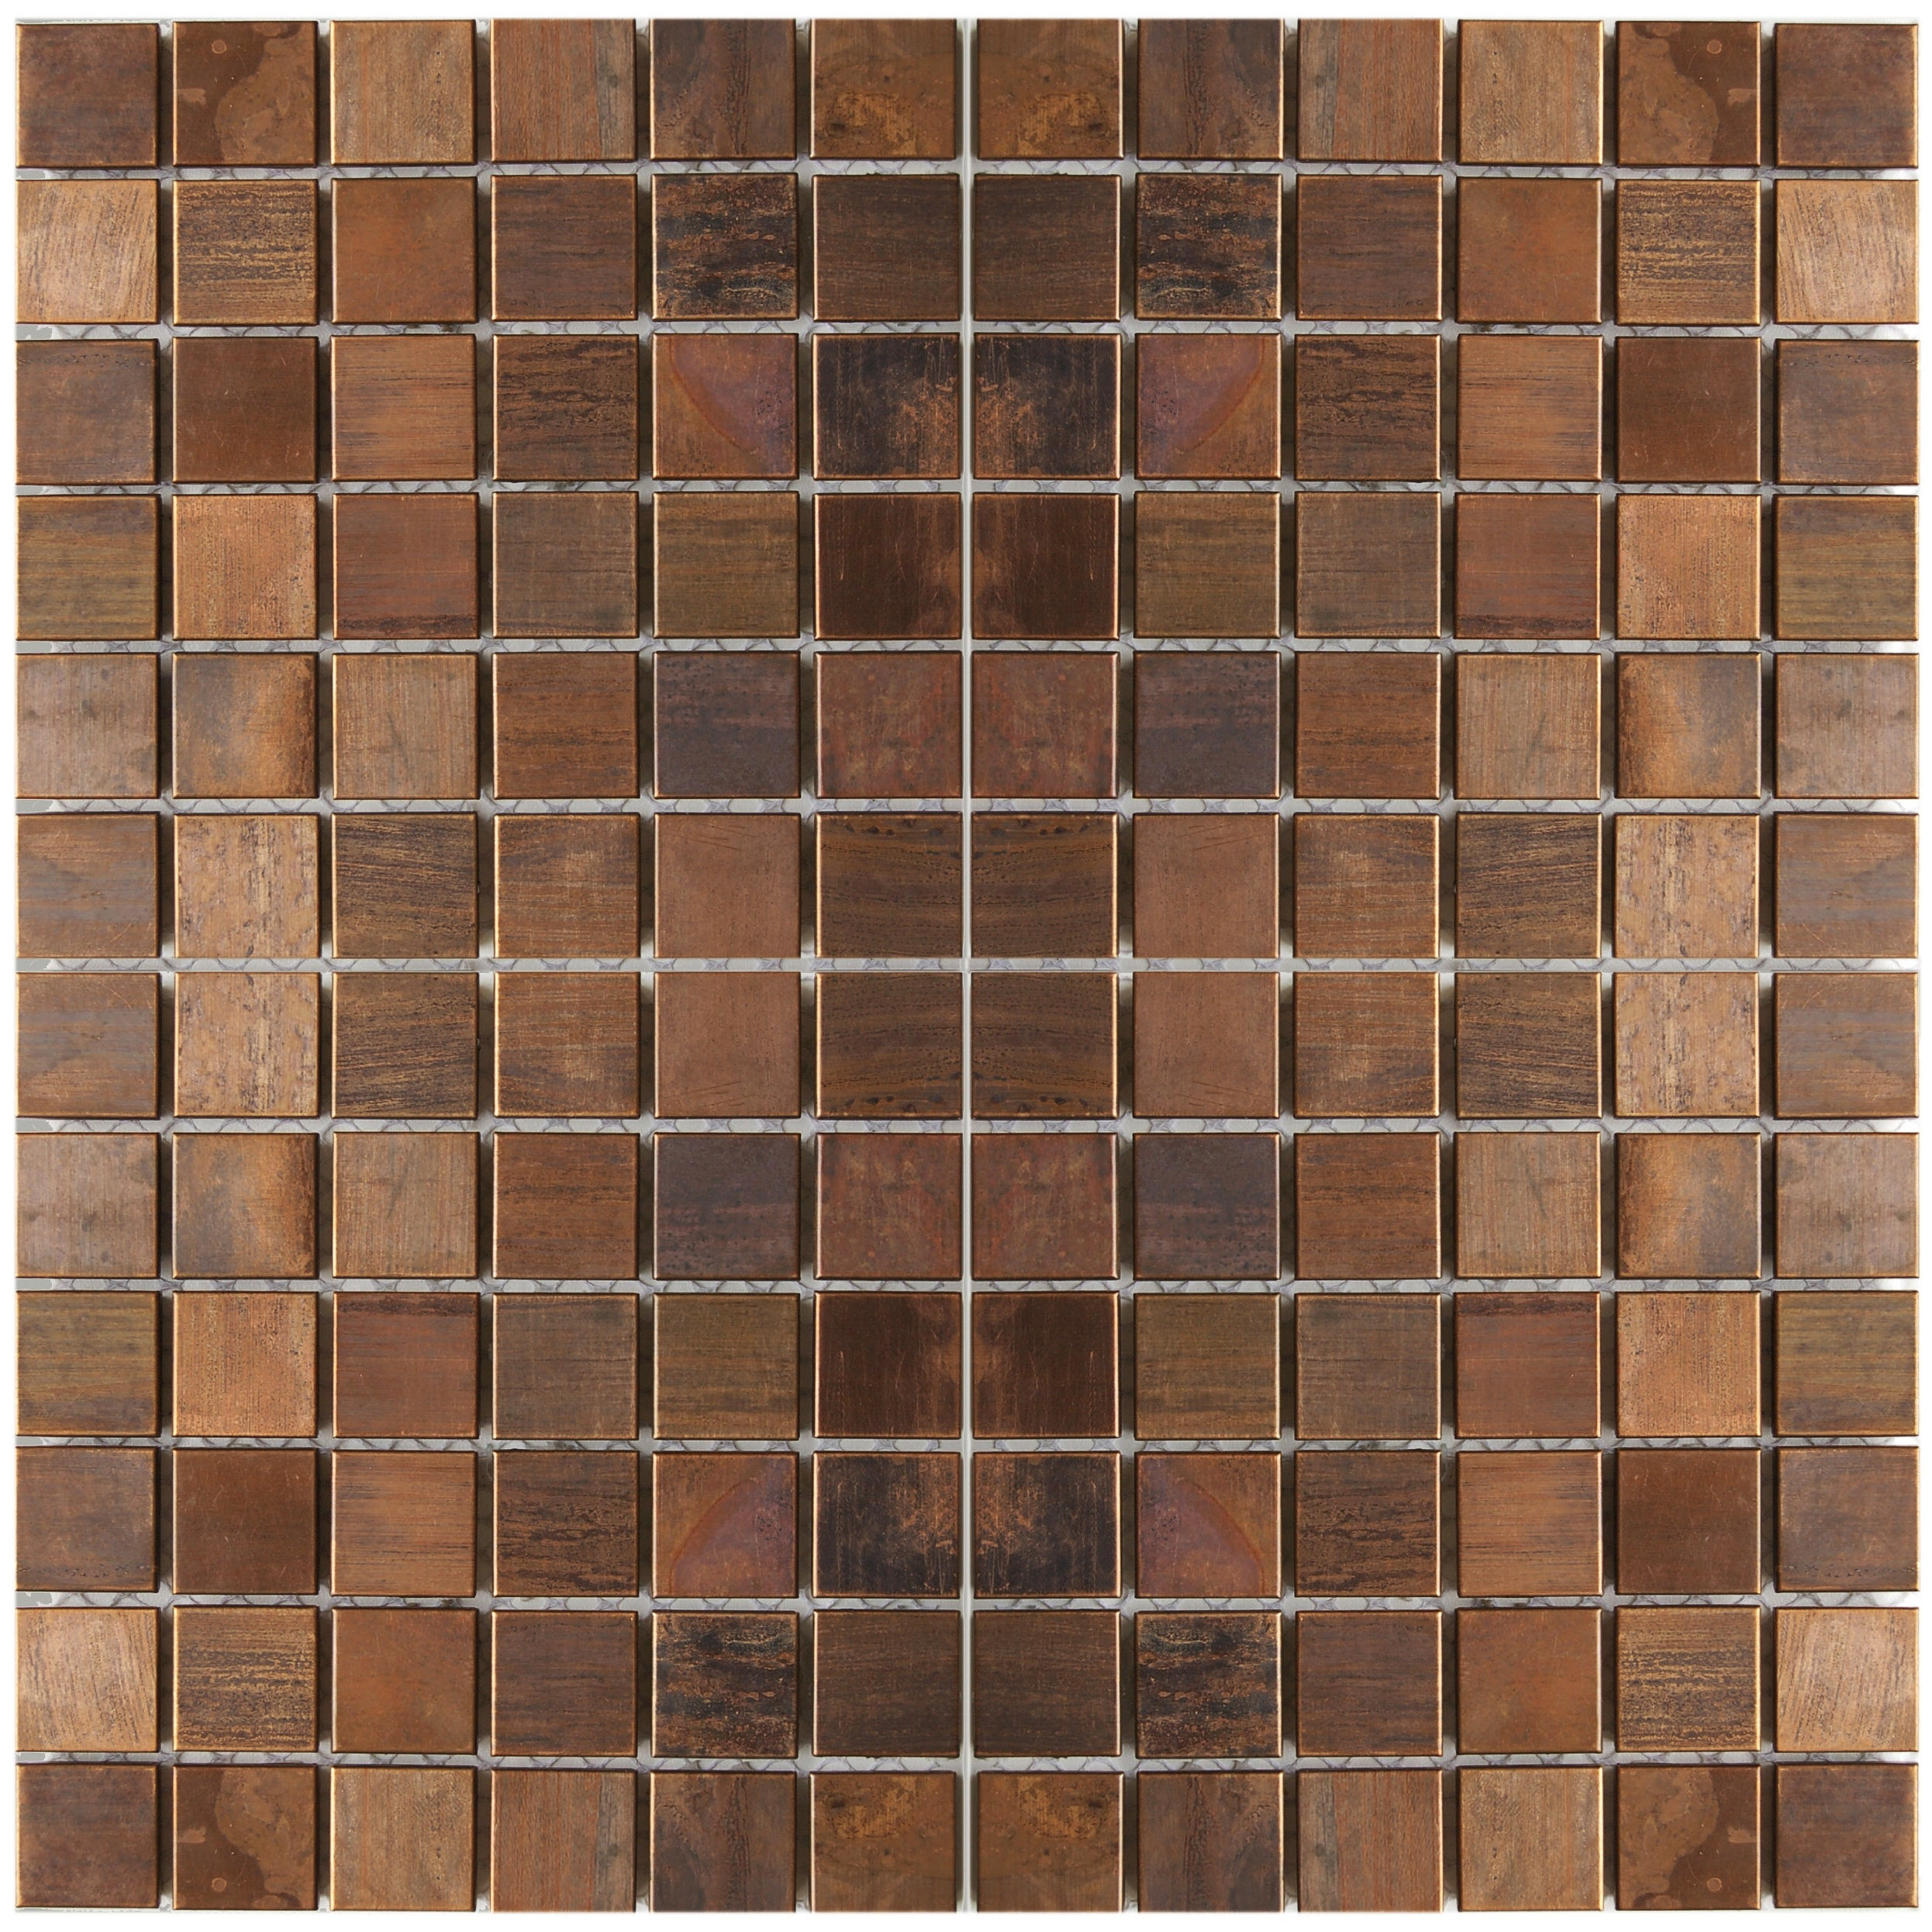 Small Square Antique Copper Tile 11 8x11 8 11 Tiles 10 63 Sqft Overstock 32656643